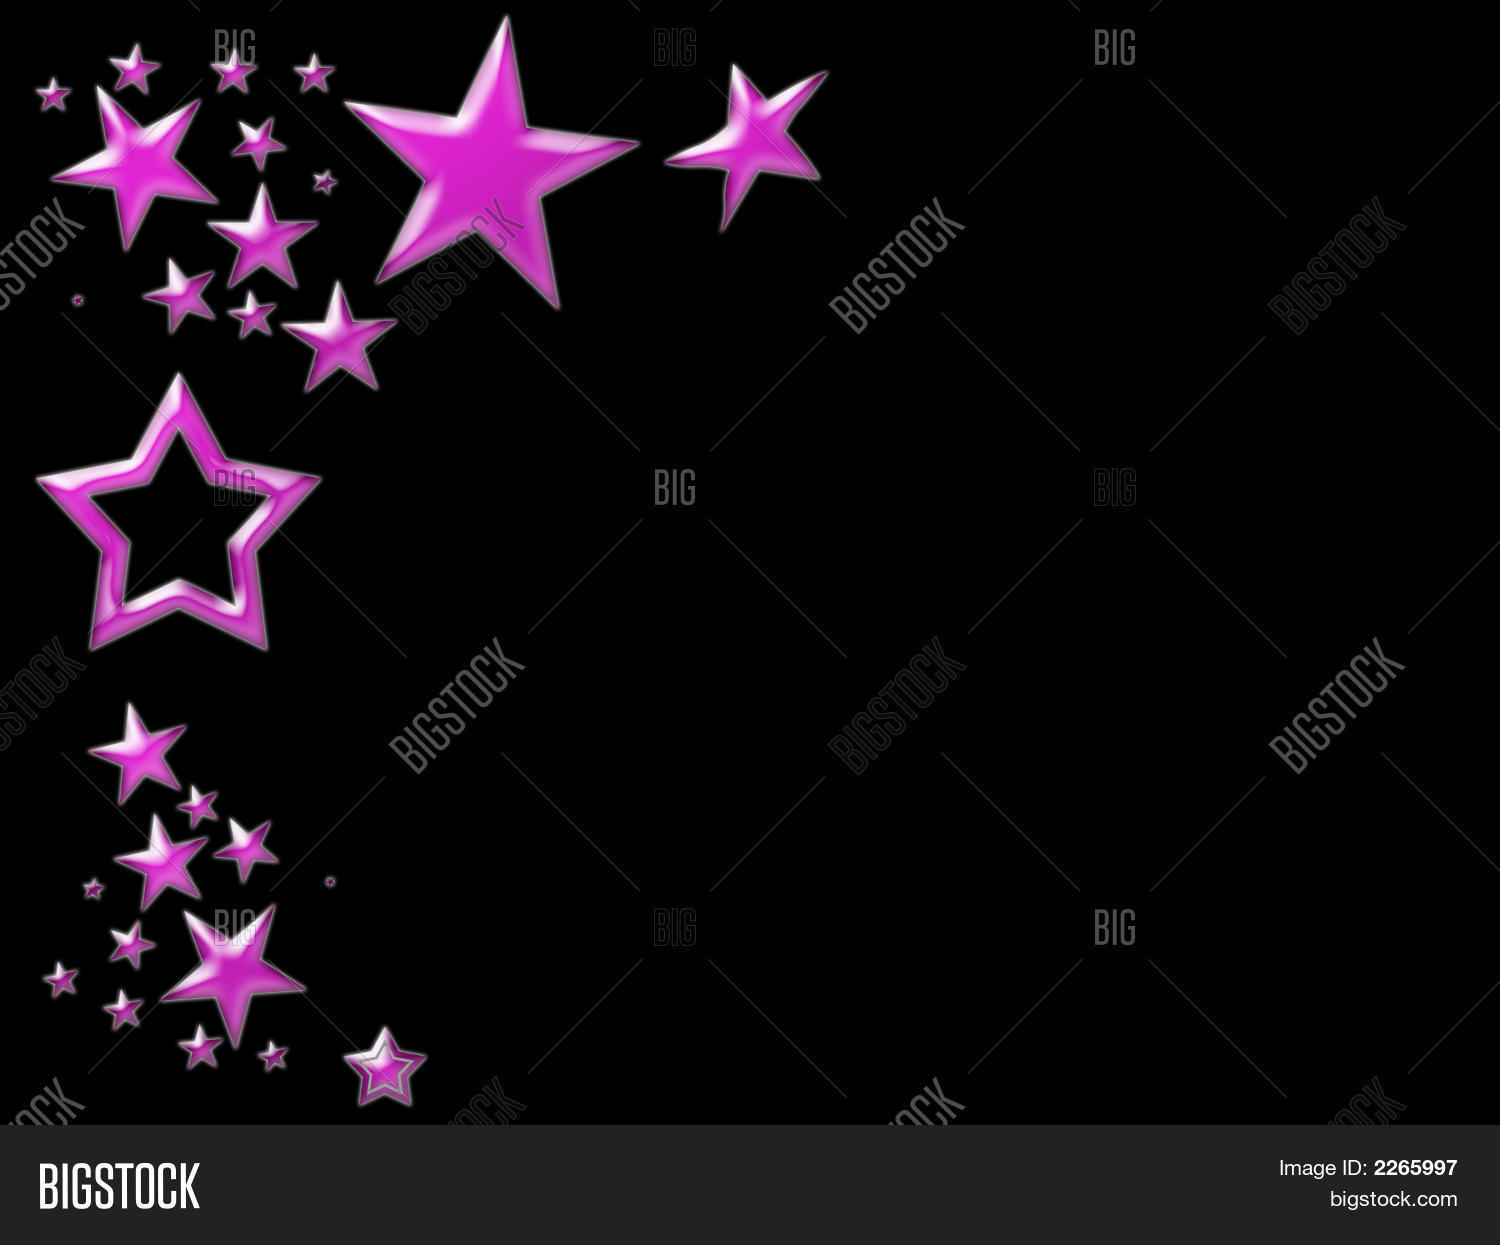 Black and pink star backgrounds